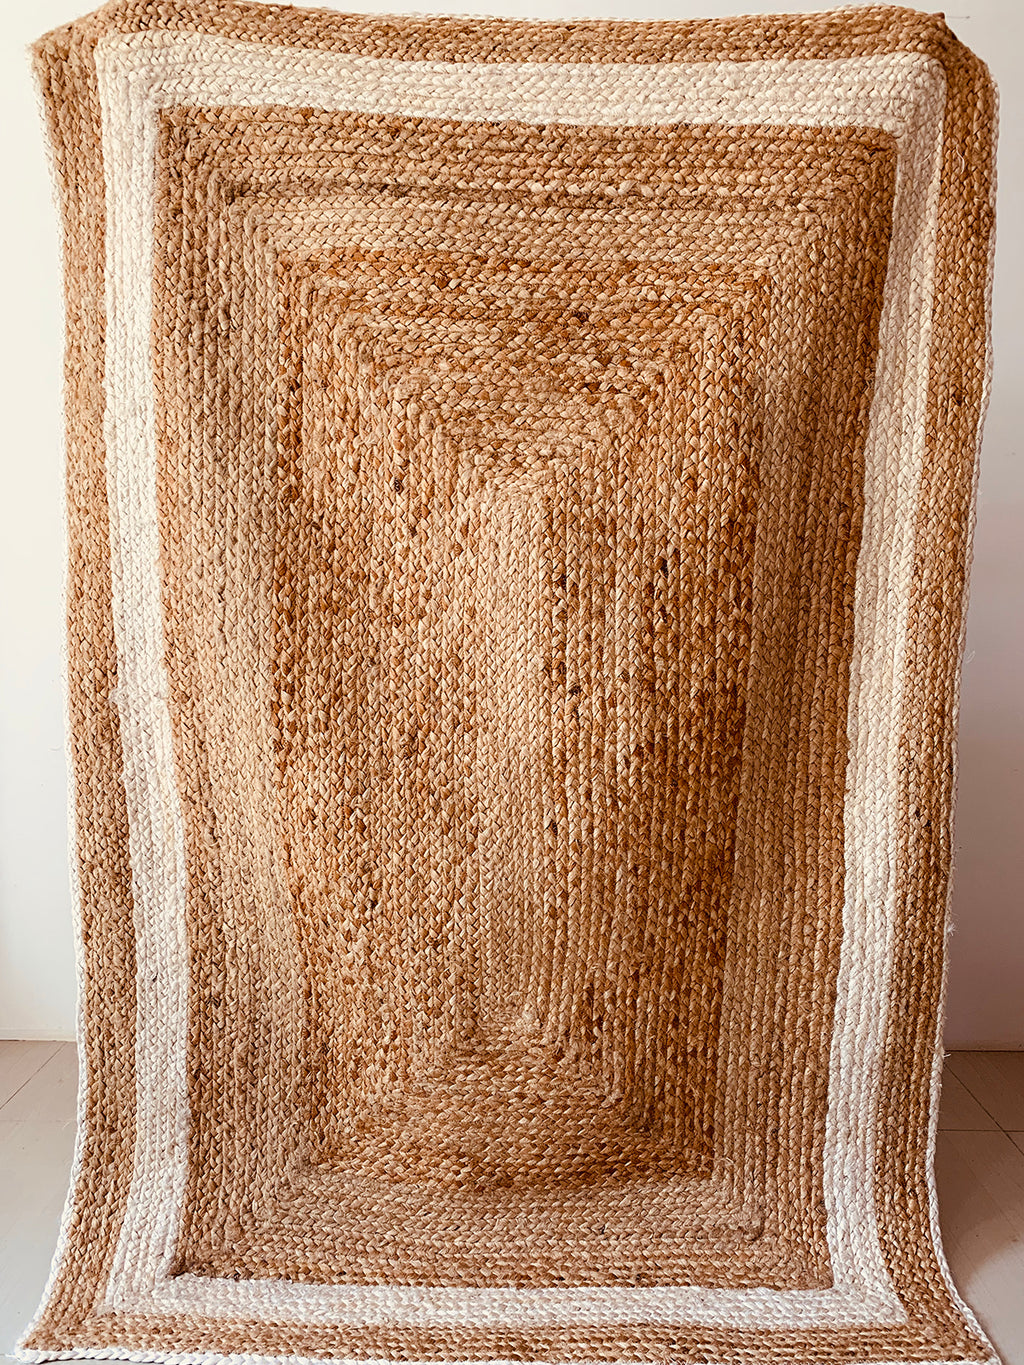 Jute Ecru striped Border Rug 8 x 10 ft